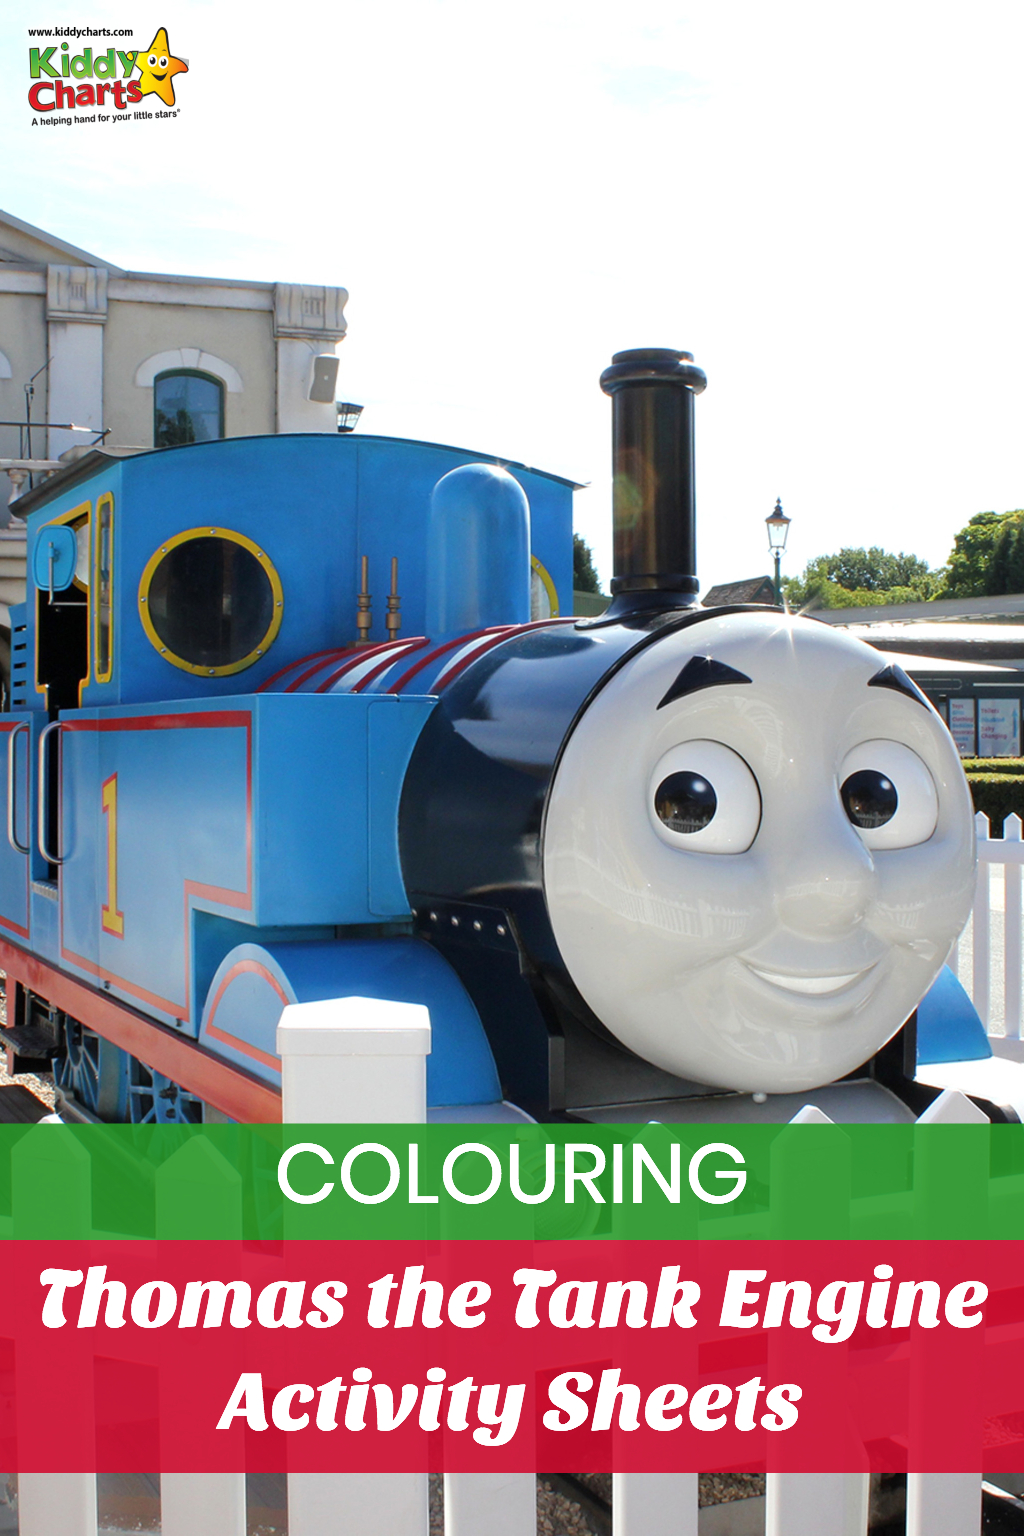 Thomas the Tank Engine activity sheets for all those little train spotters out there!